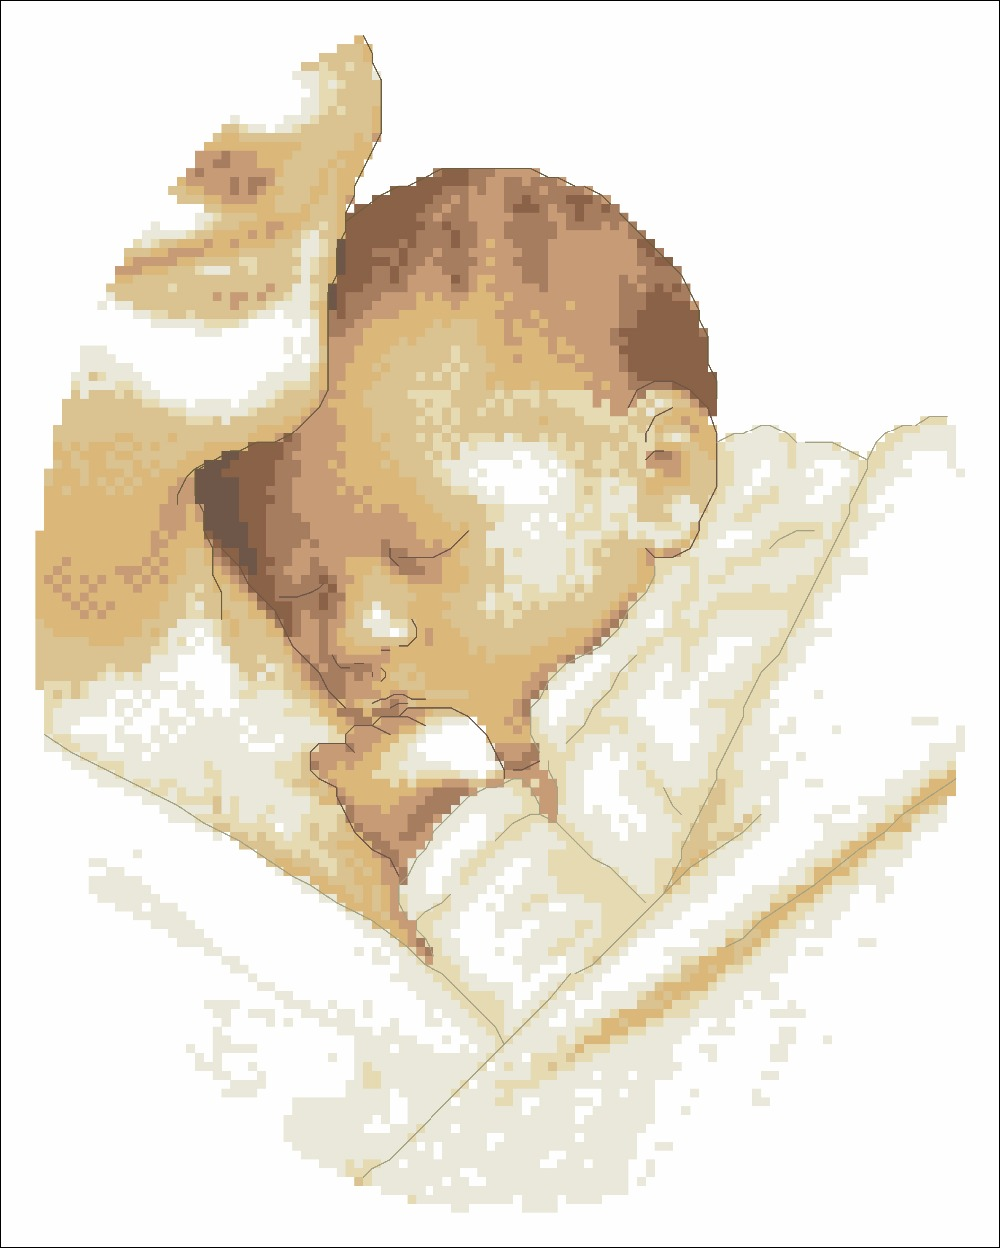 Little Angel Cross Stitch Package Mother Son Children 18ct 14ct 11ct Cloth Cotton Thread Embroidery DIY Handmade Needlework